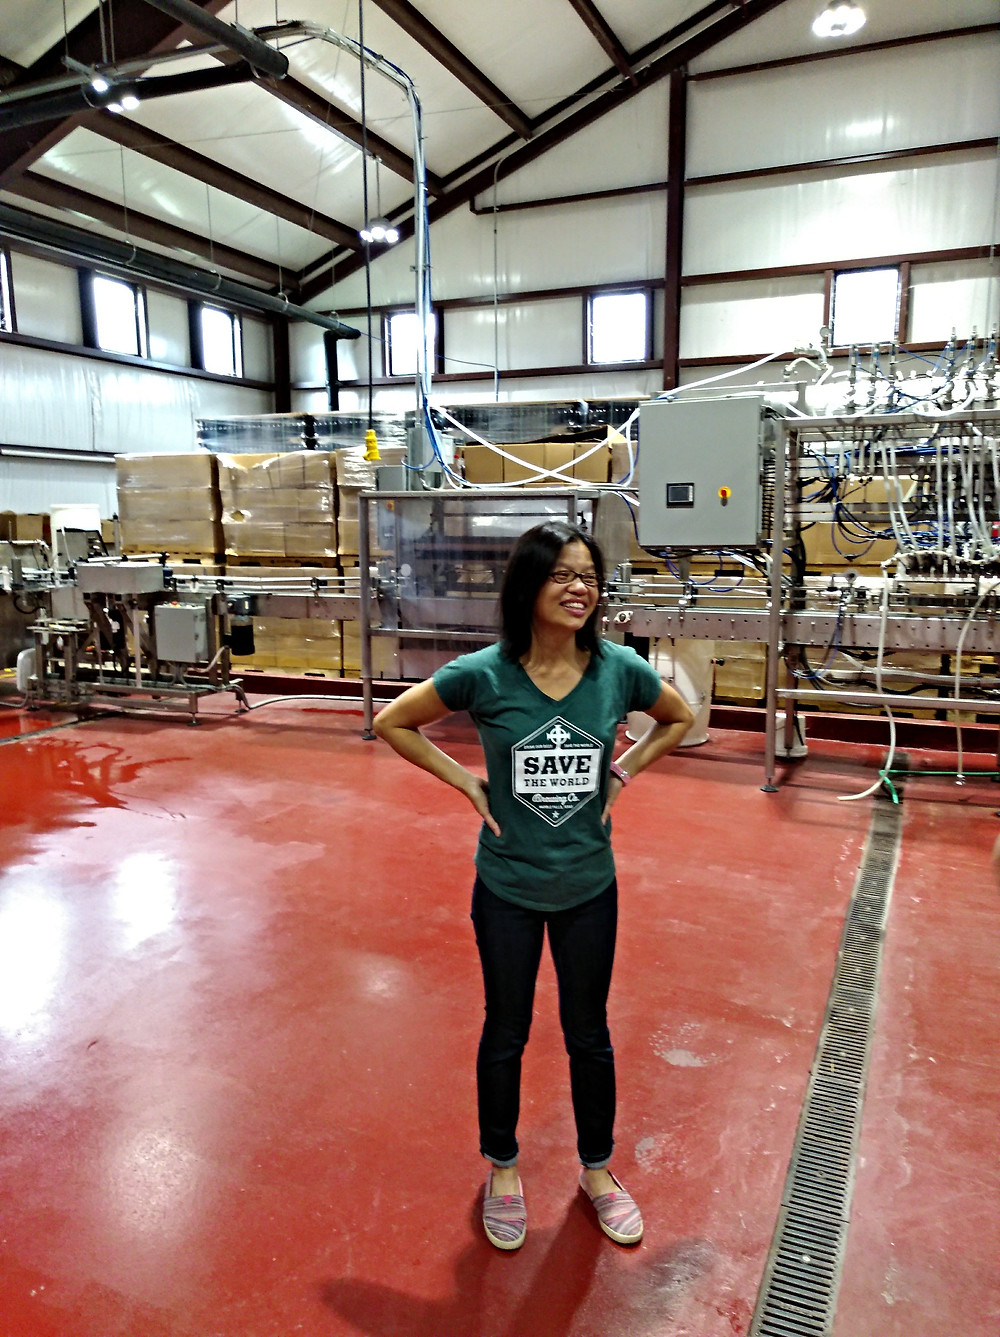 Quynh Rathkamp at the Save The World Brewing Company Brewery